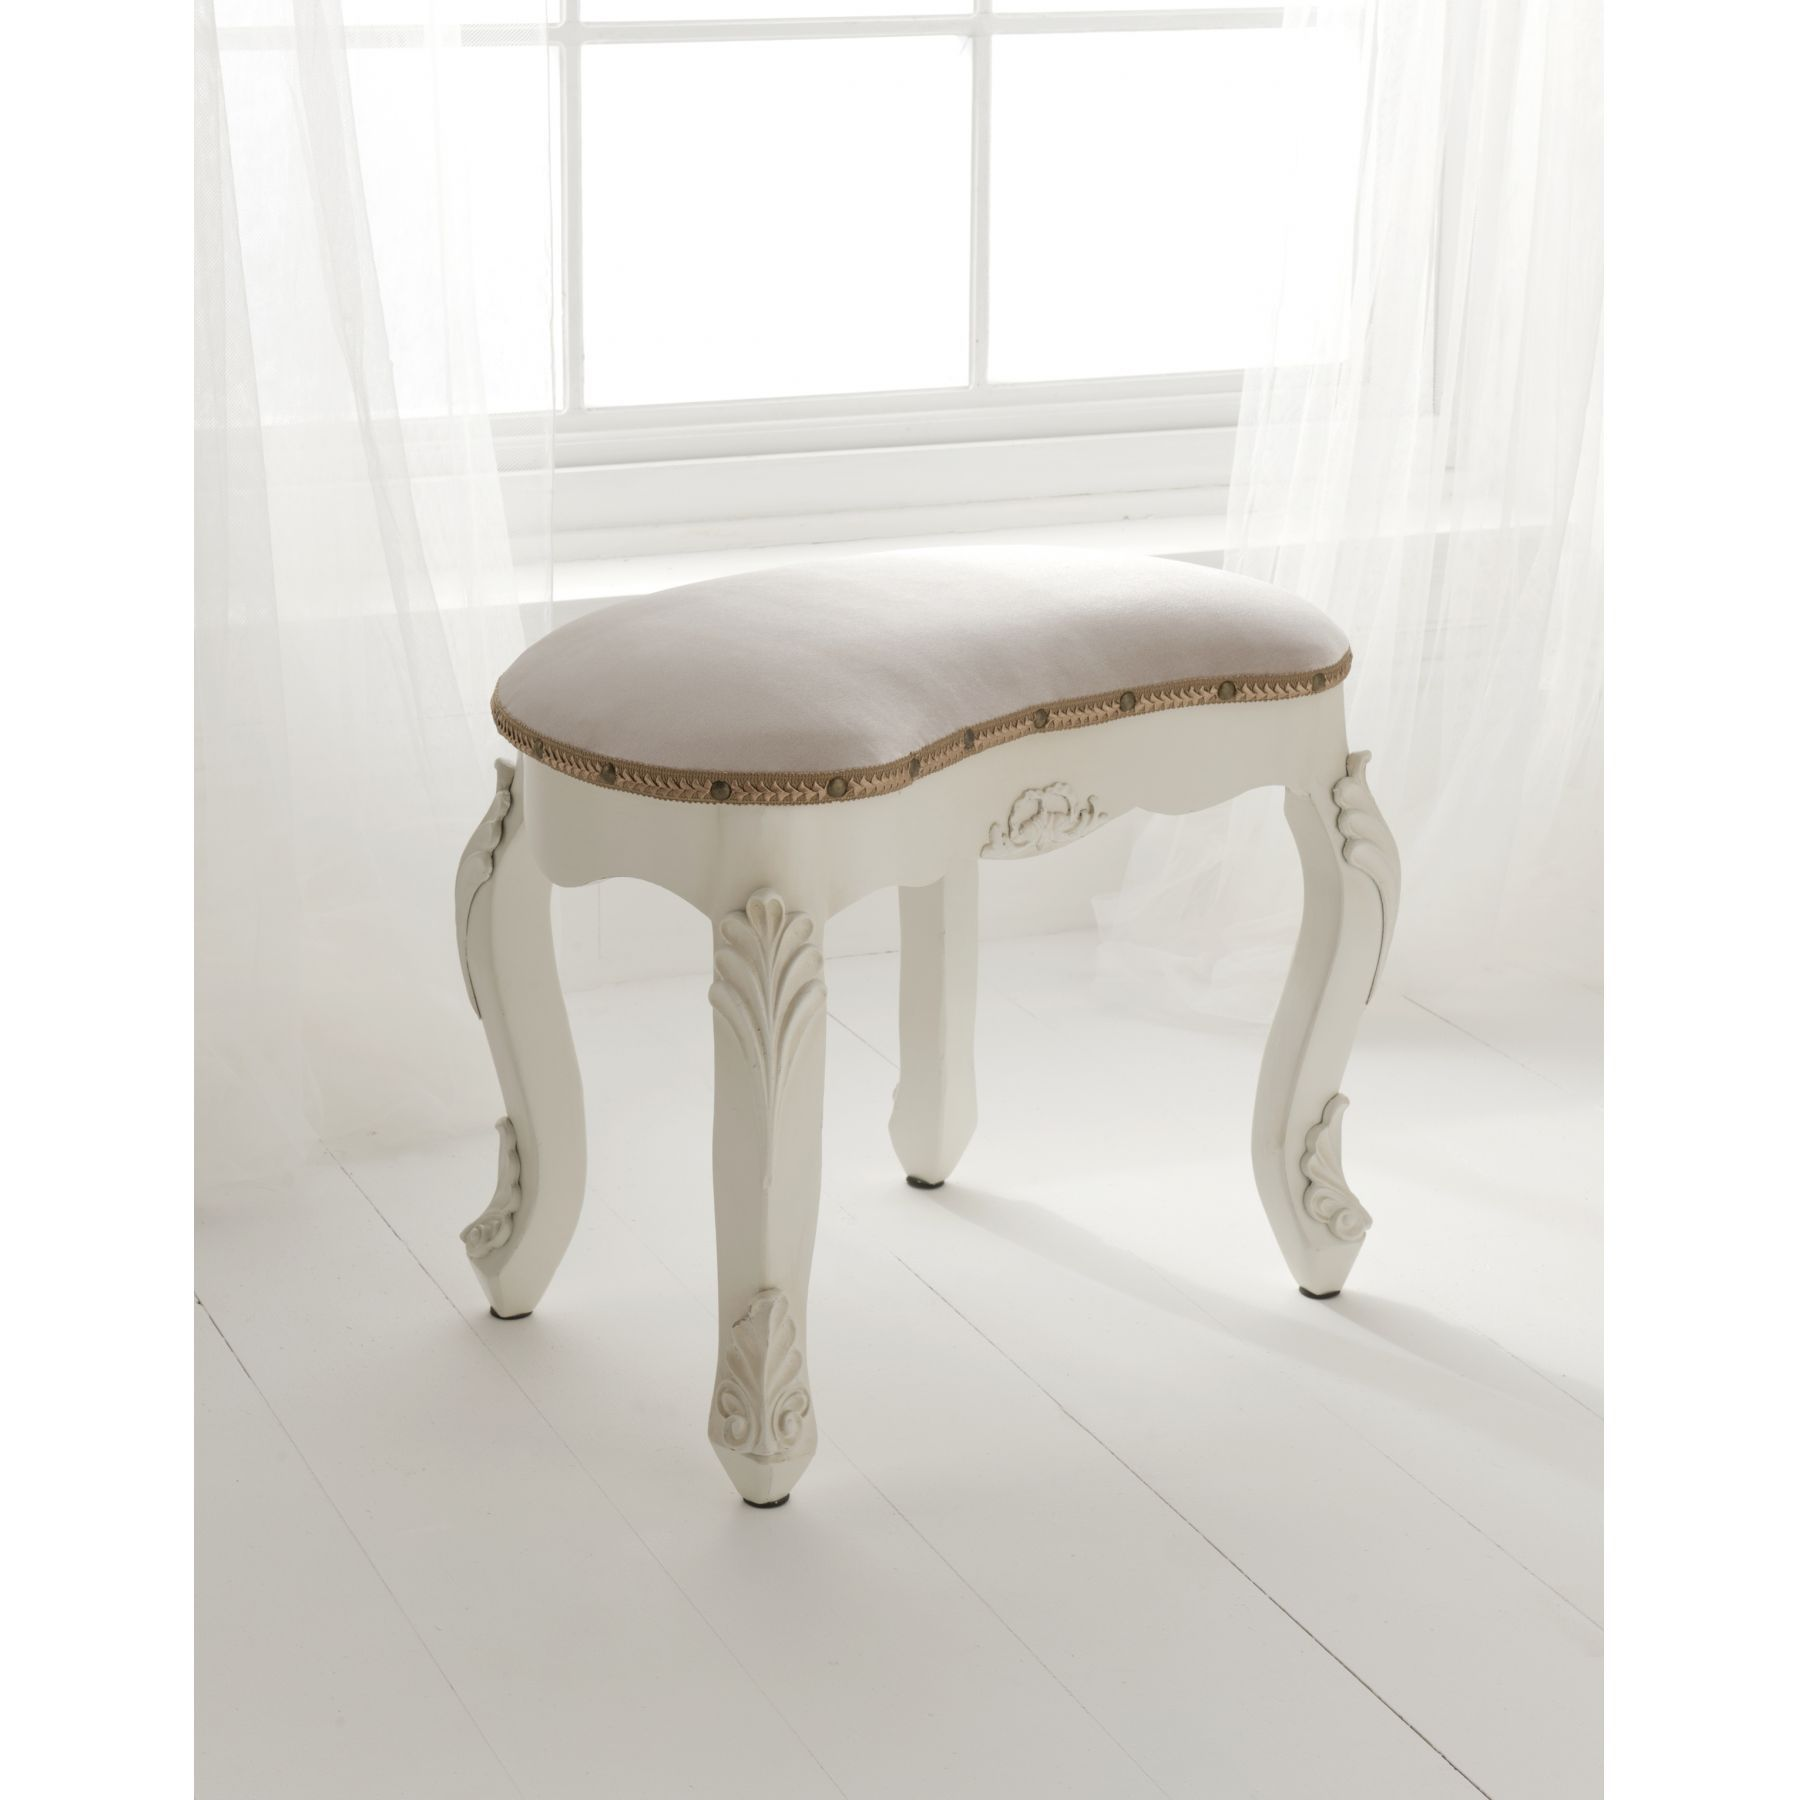 bedroom stool. This exceptional White Antique French Stool is available online from Pin by Pe  on white Pinterest furniture Stools and